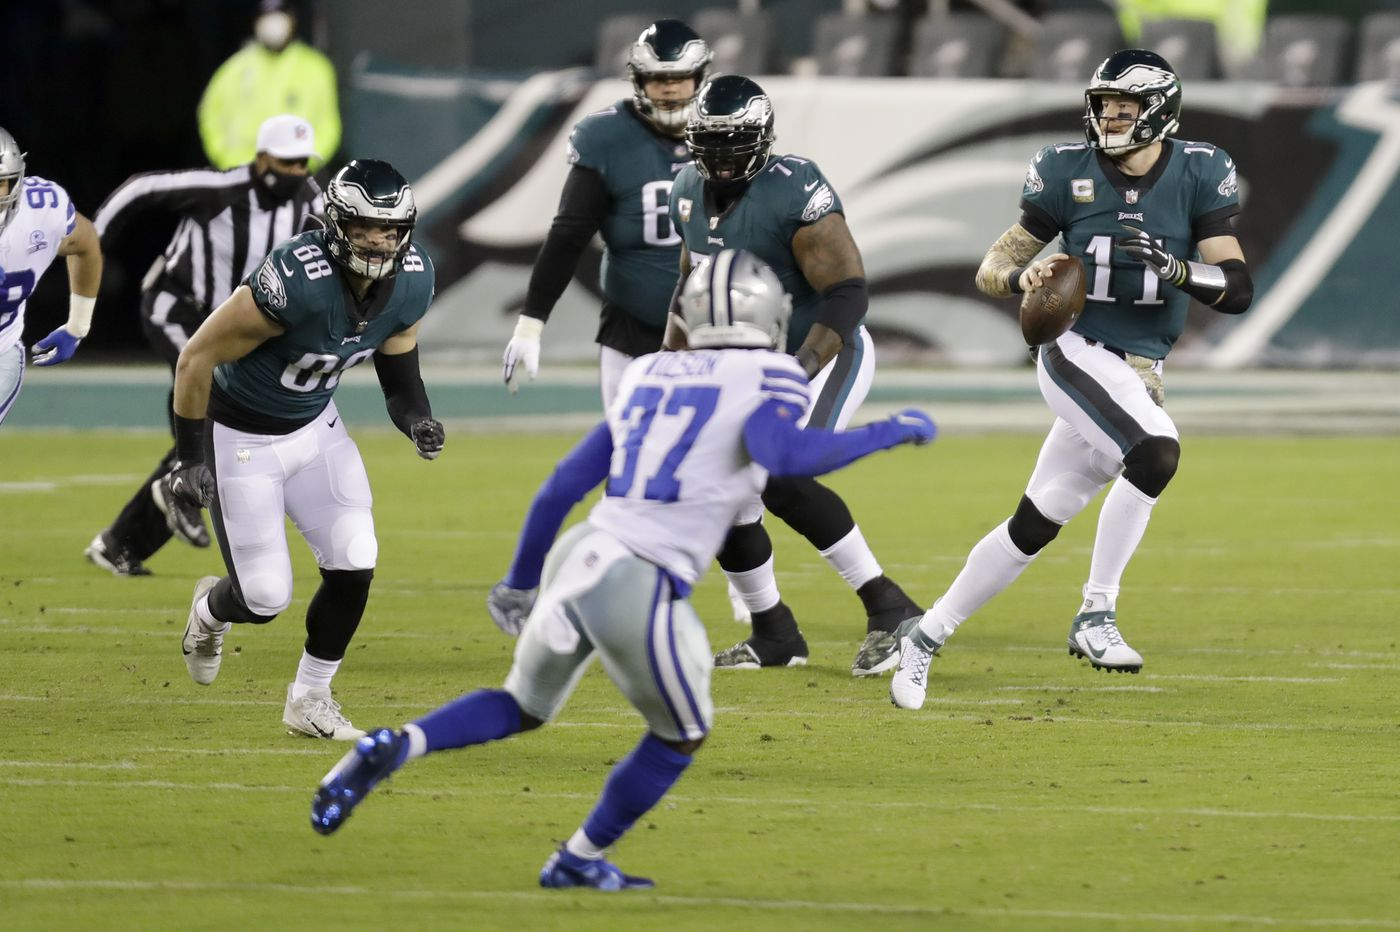 Eagles vs. Cowboys: Five takeaways from the Eagles' 23-9 win over the Cowboys